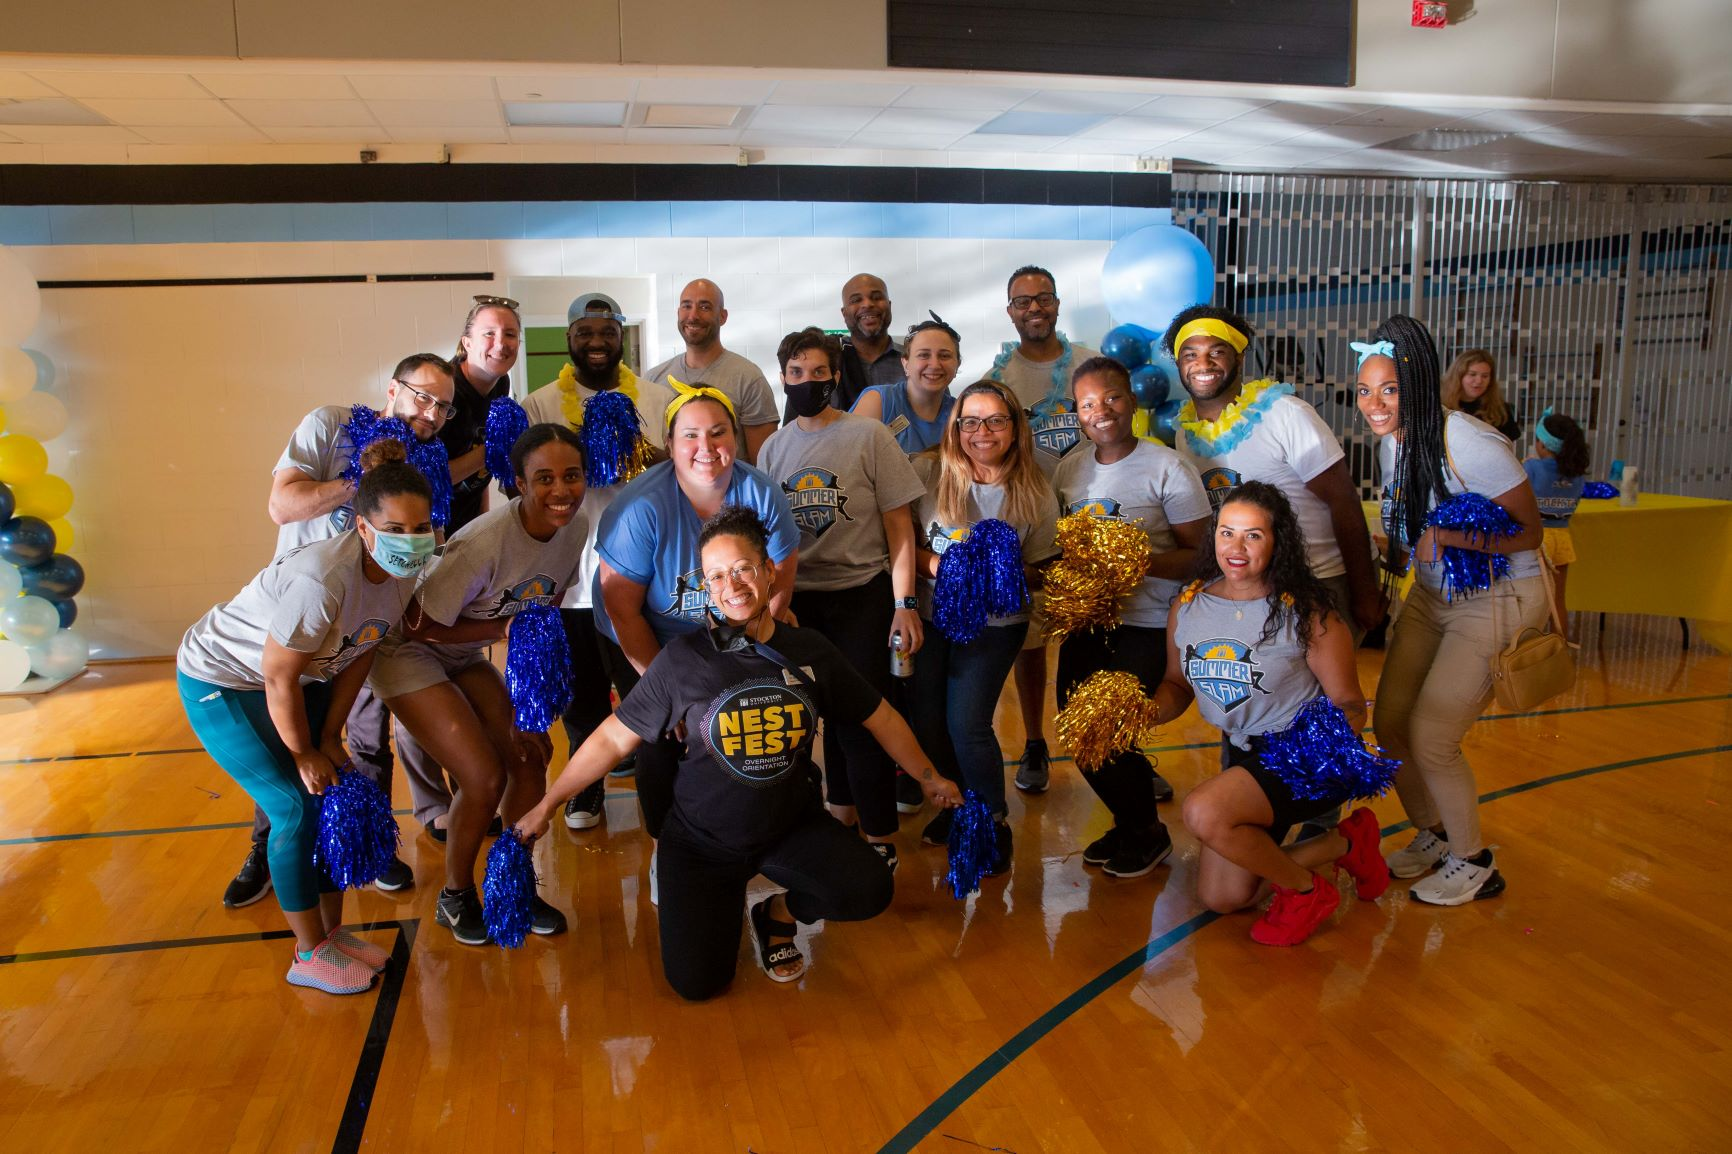 Staff members from various departments at Stockton University pose with big smiles for the camera during the Summer Slam event, part of Stockton's new overnight orientation experience called Nest Fest.